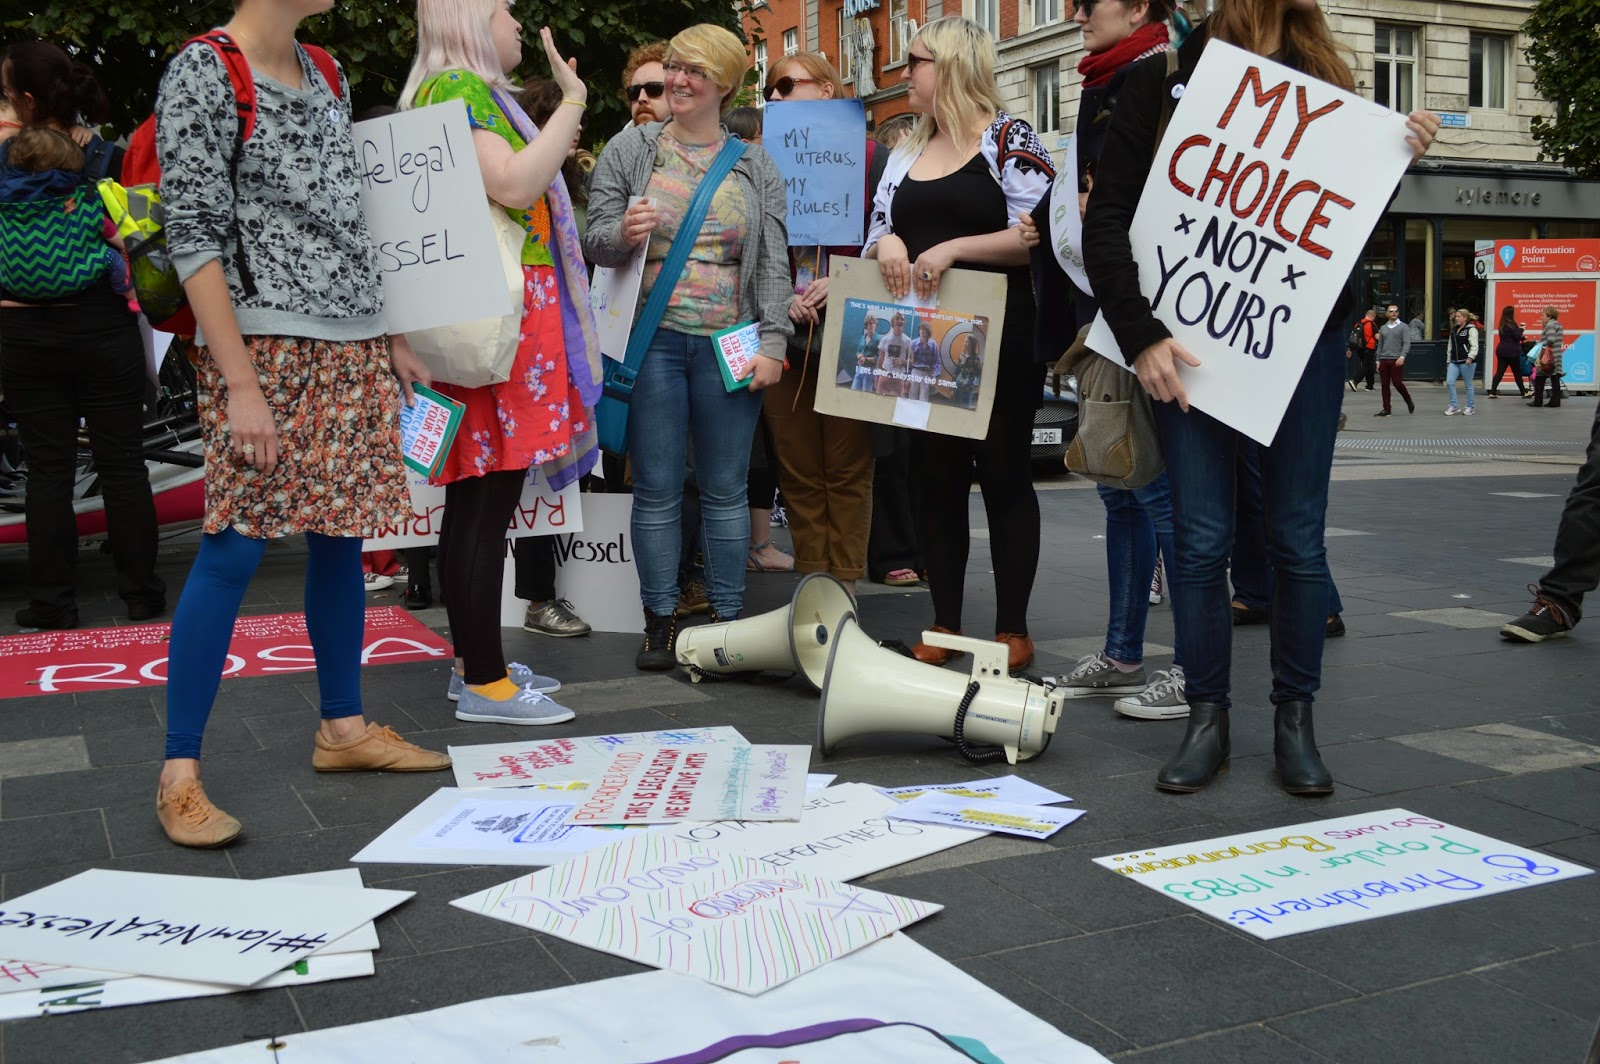 Irish Court allows doctors to take pregnant woman off life support system